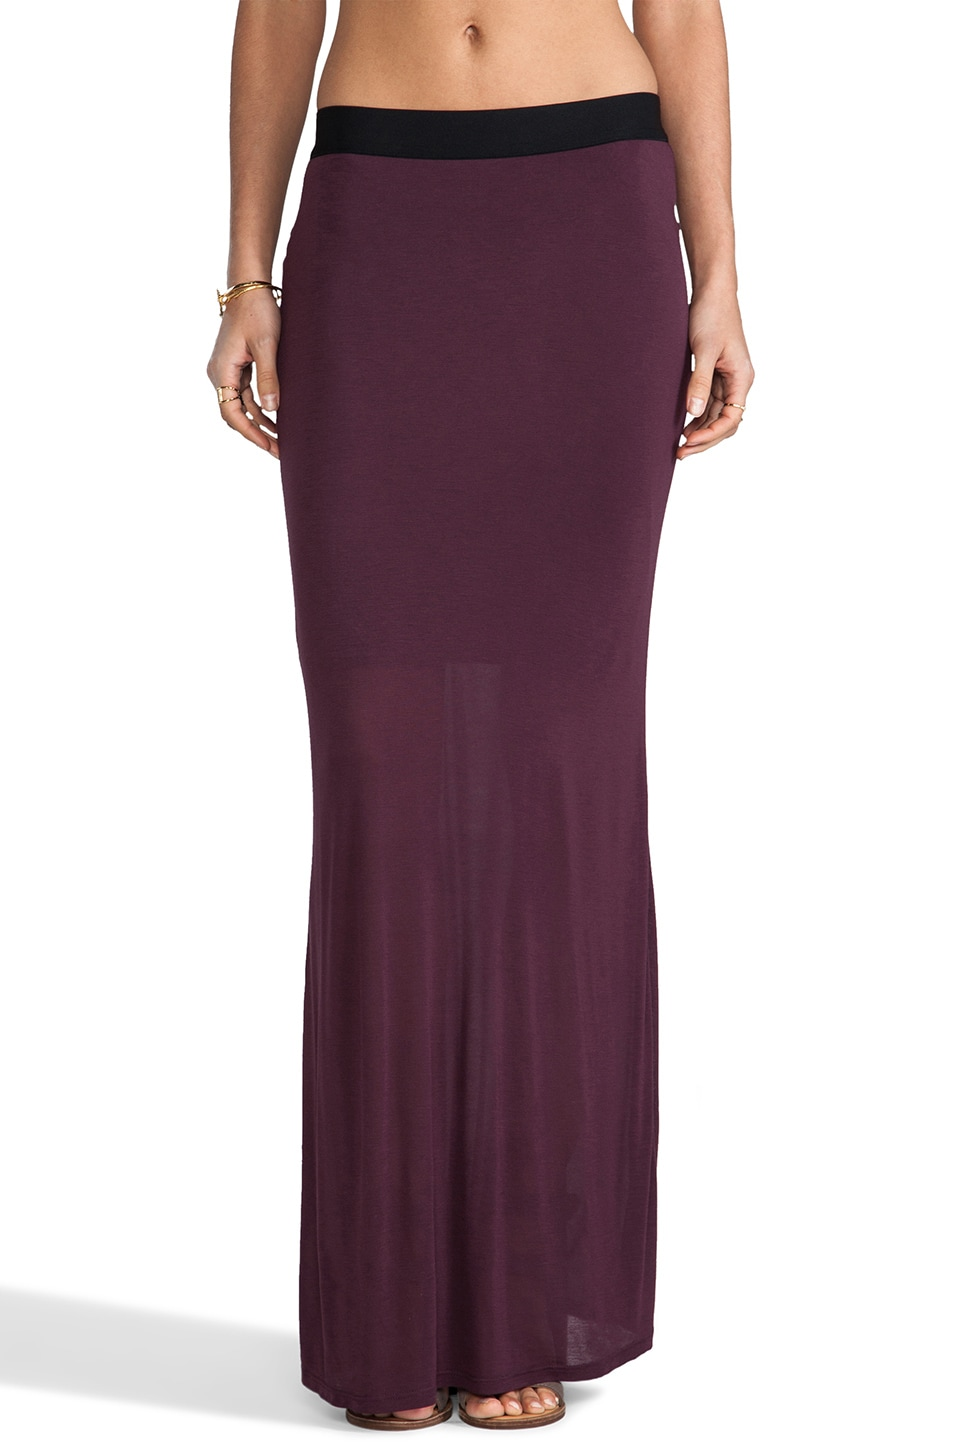 Heather Fishtail Maxi Skirt in Aubergine